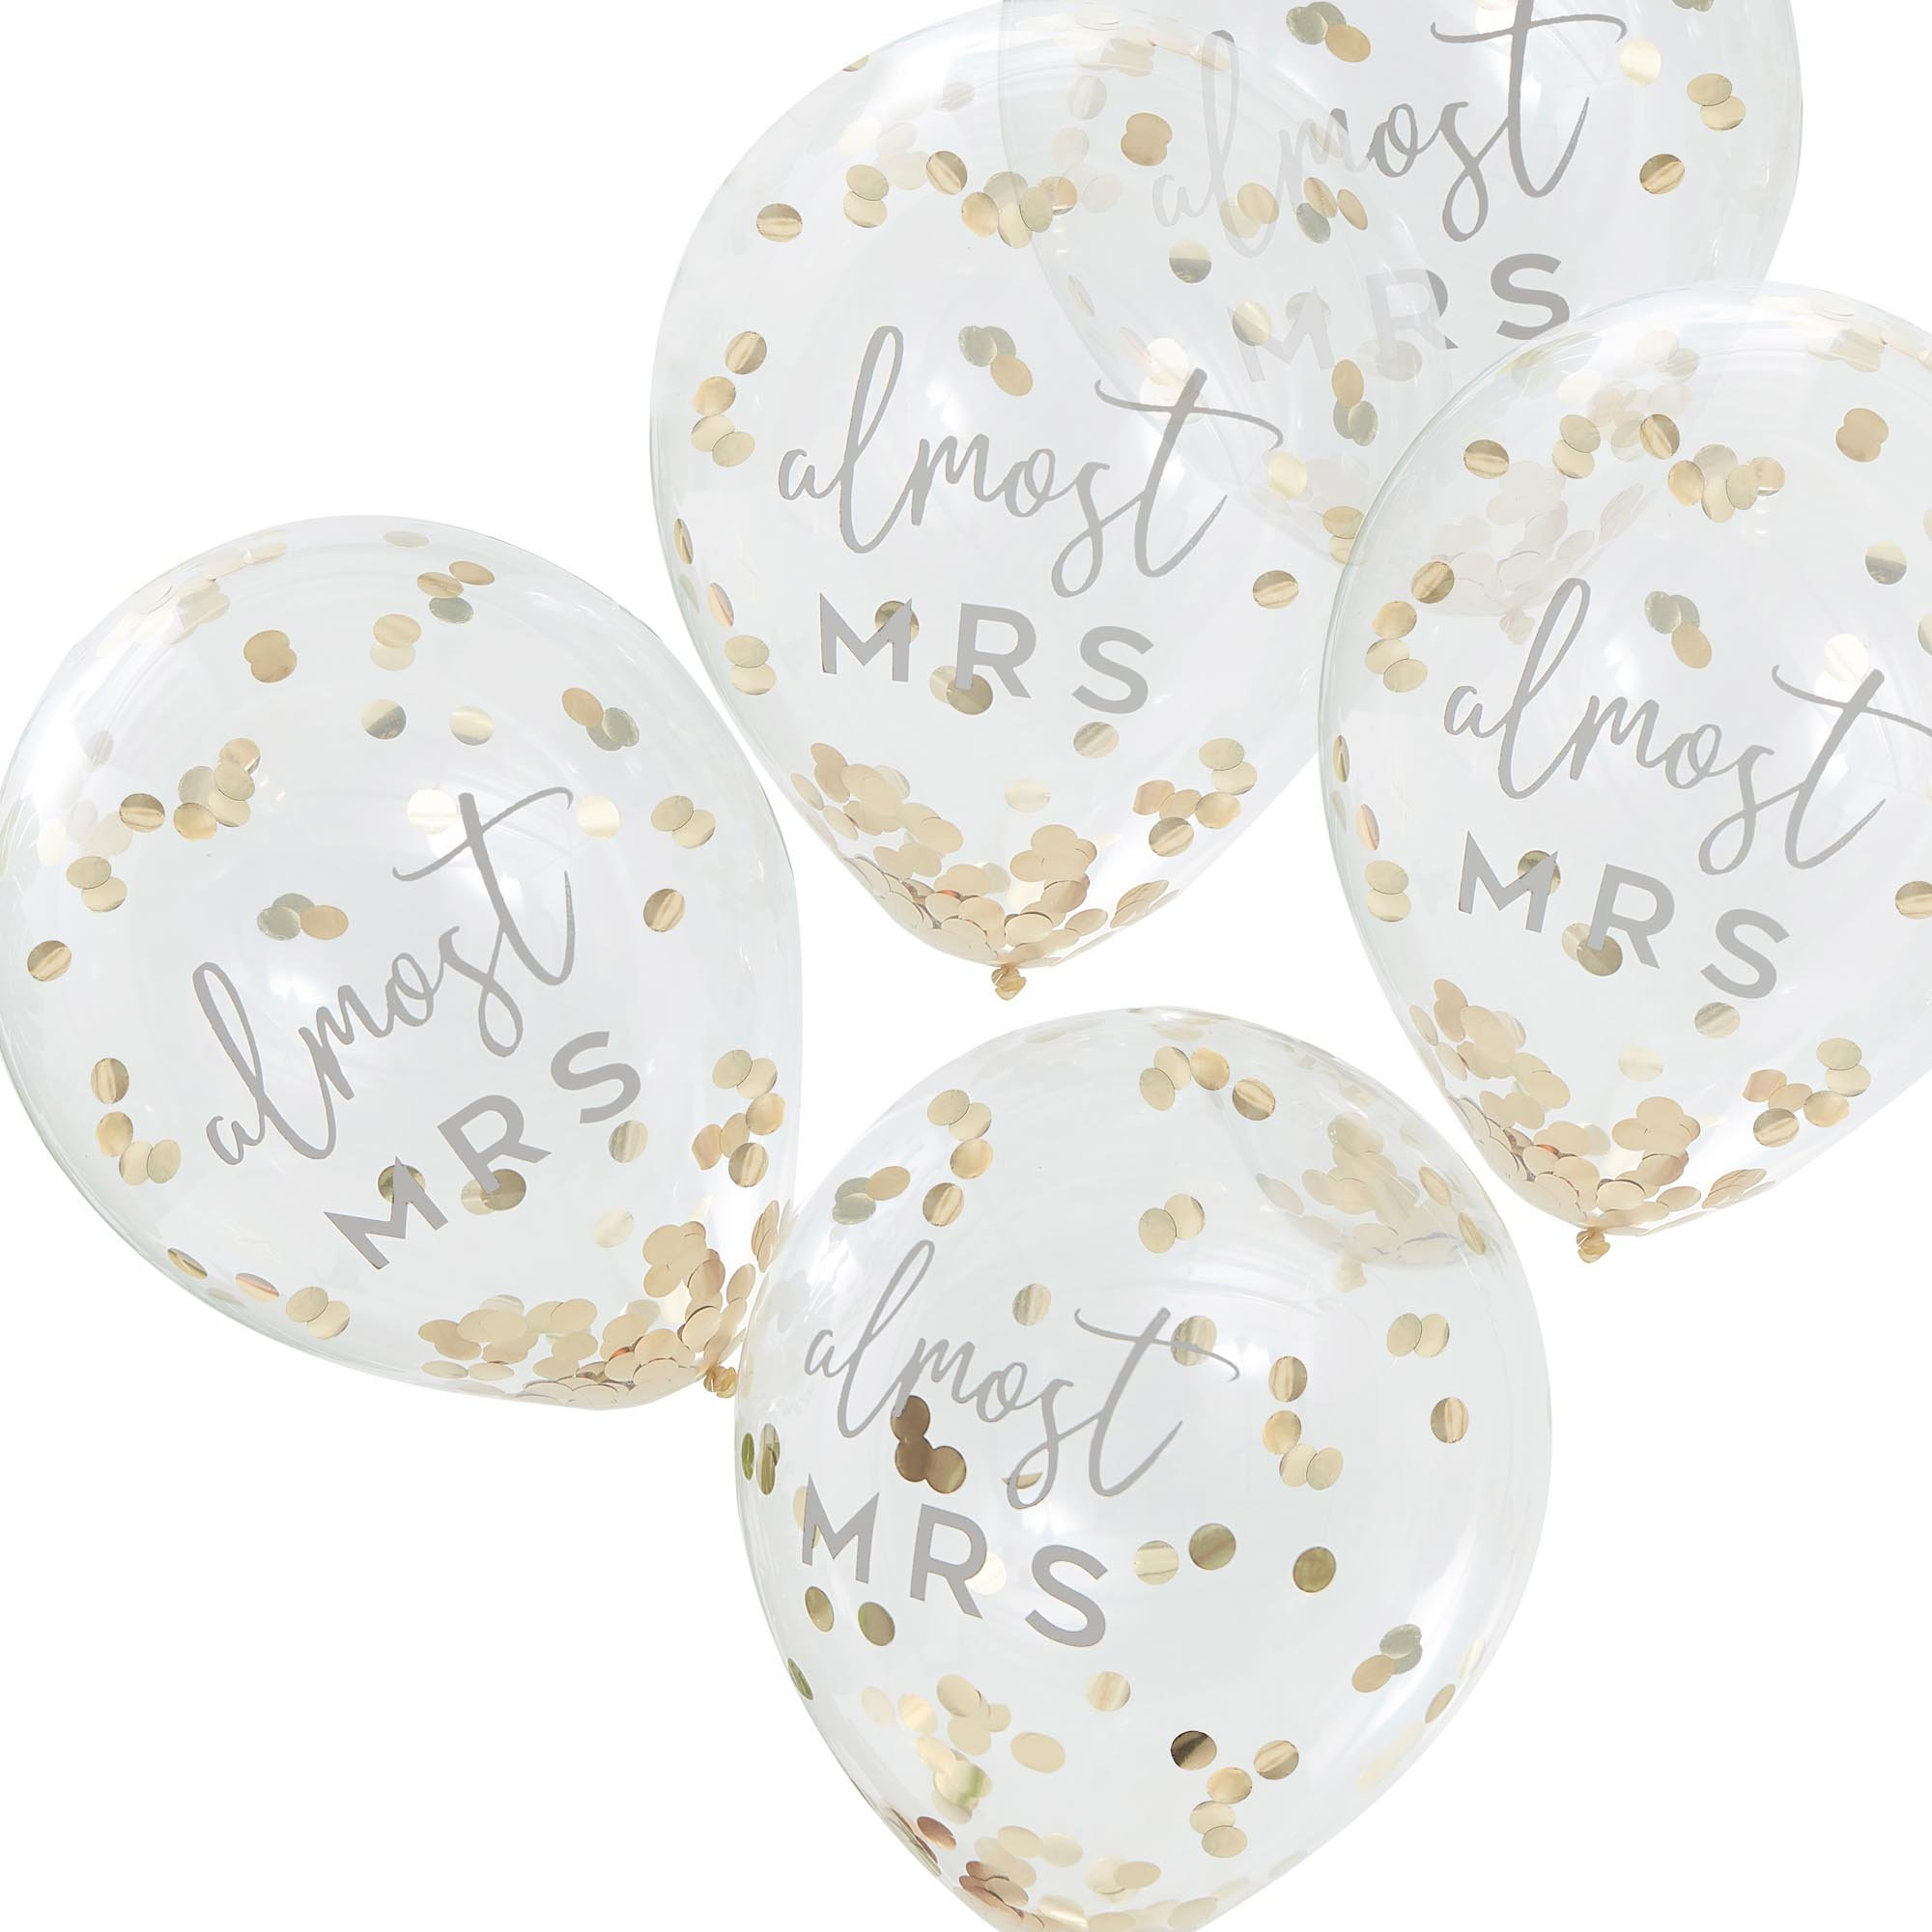 Botanical Hen Party Gold Confetti 30cm Latex Balloons almost MRS